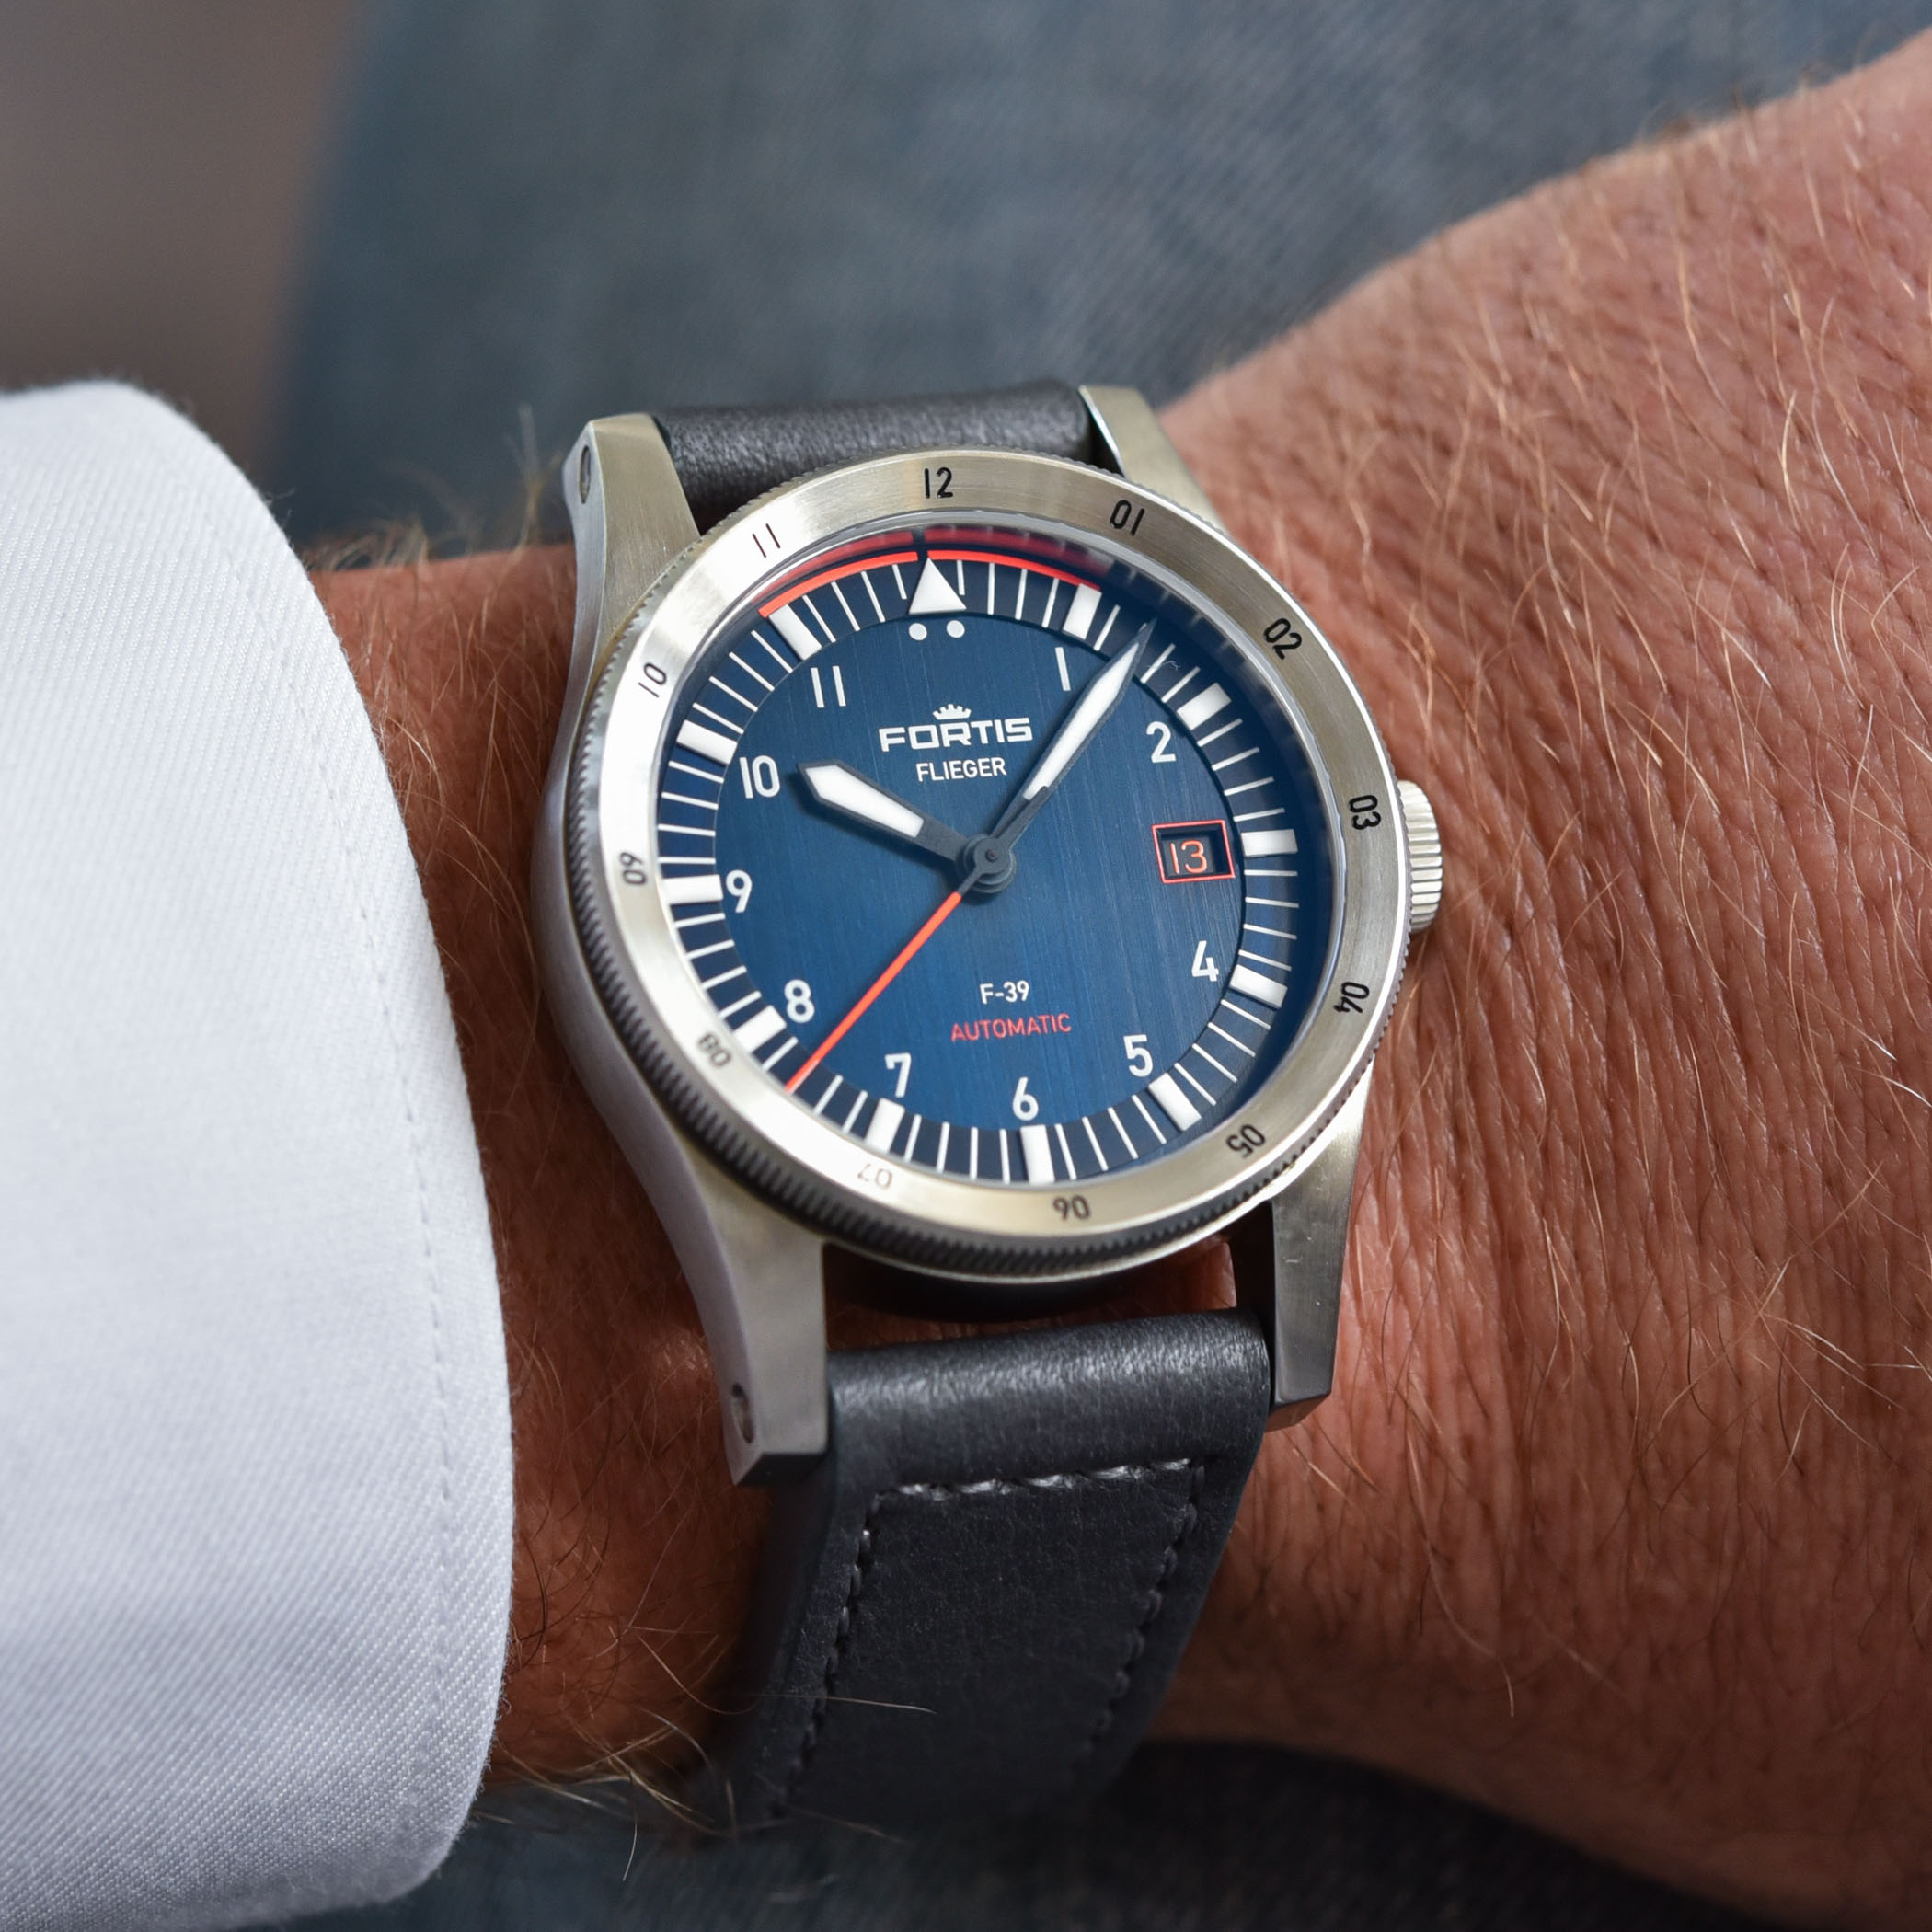 Fortis Flieger F-39 and F-41 Midnight Blue